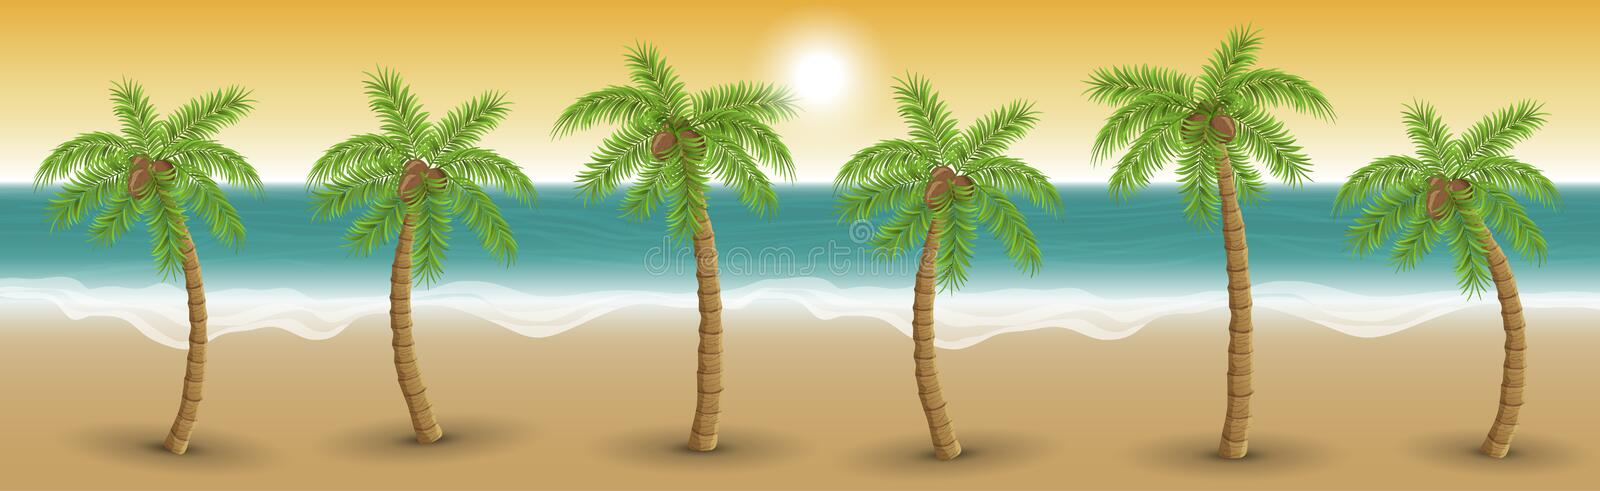 Palm trees in a row on beach in sunset, vector illustration vector illustration